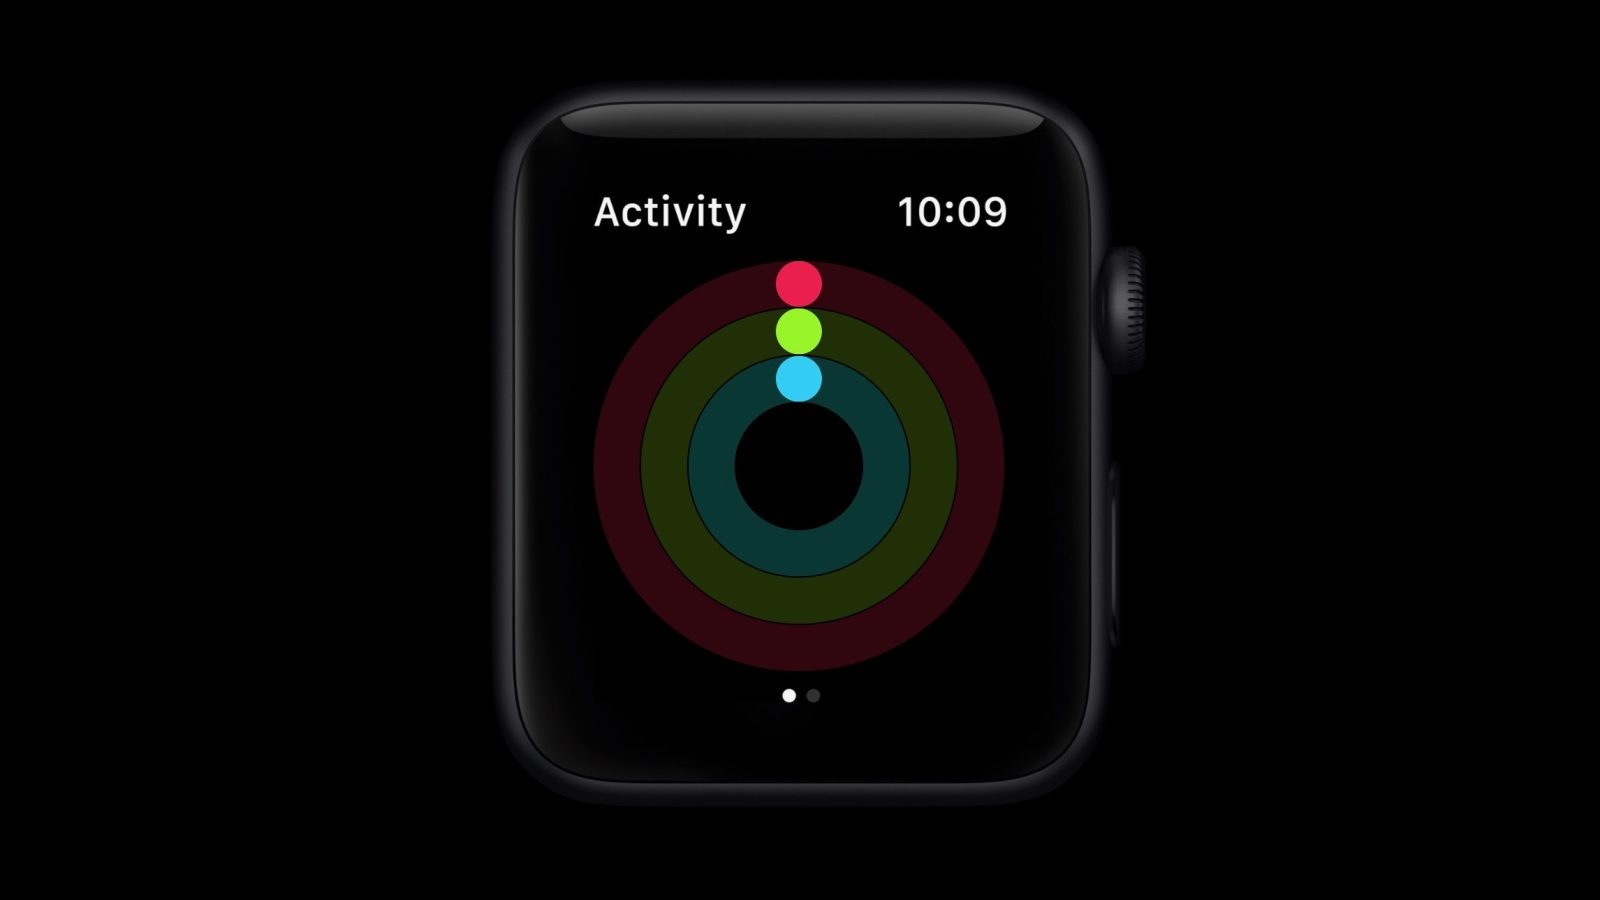 Apple Watch: How to check your passive and total calories burned